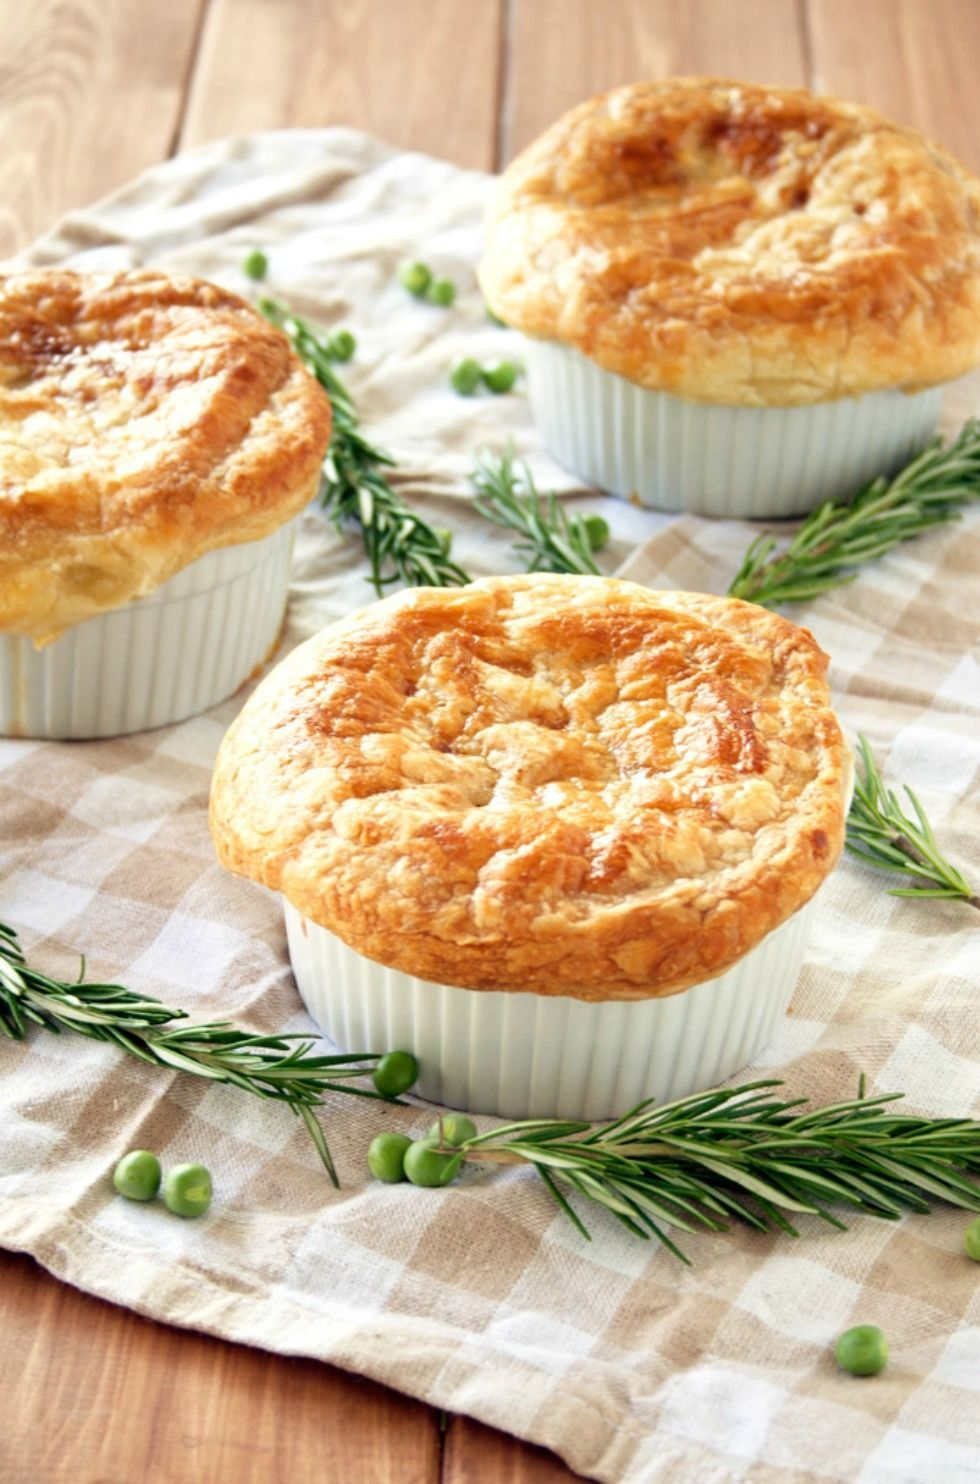 14 easy and tasty puff pastry recipe ideas pot pies crusts and pie 14 easy and tasty puff pastry recipe ideas forumfinder Gallery